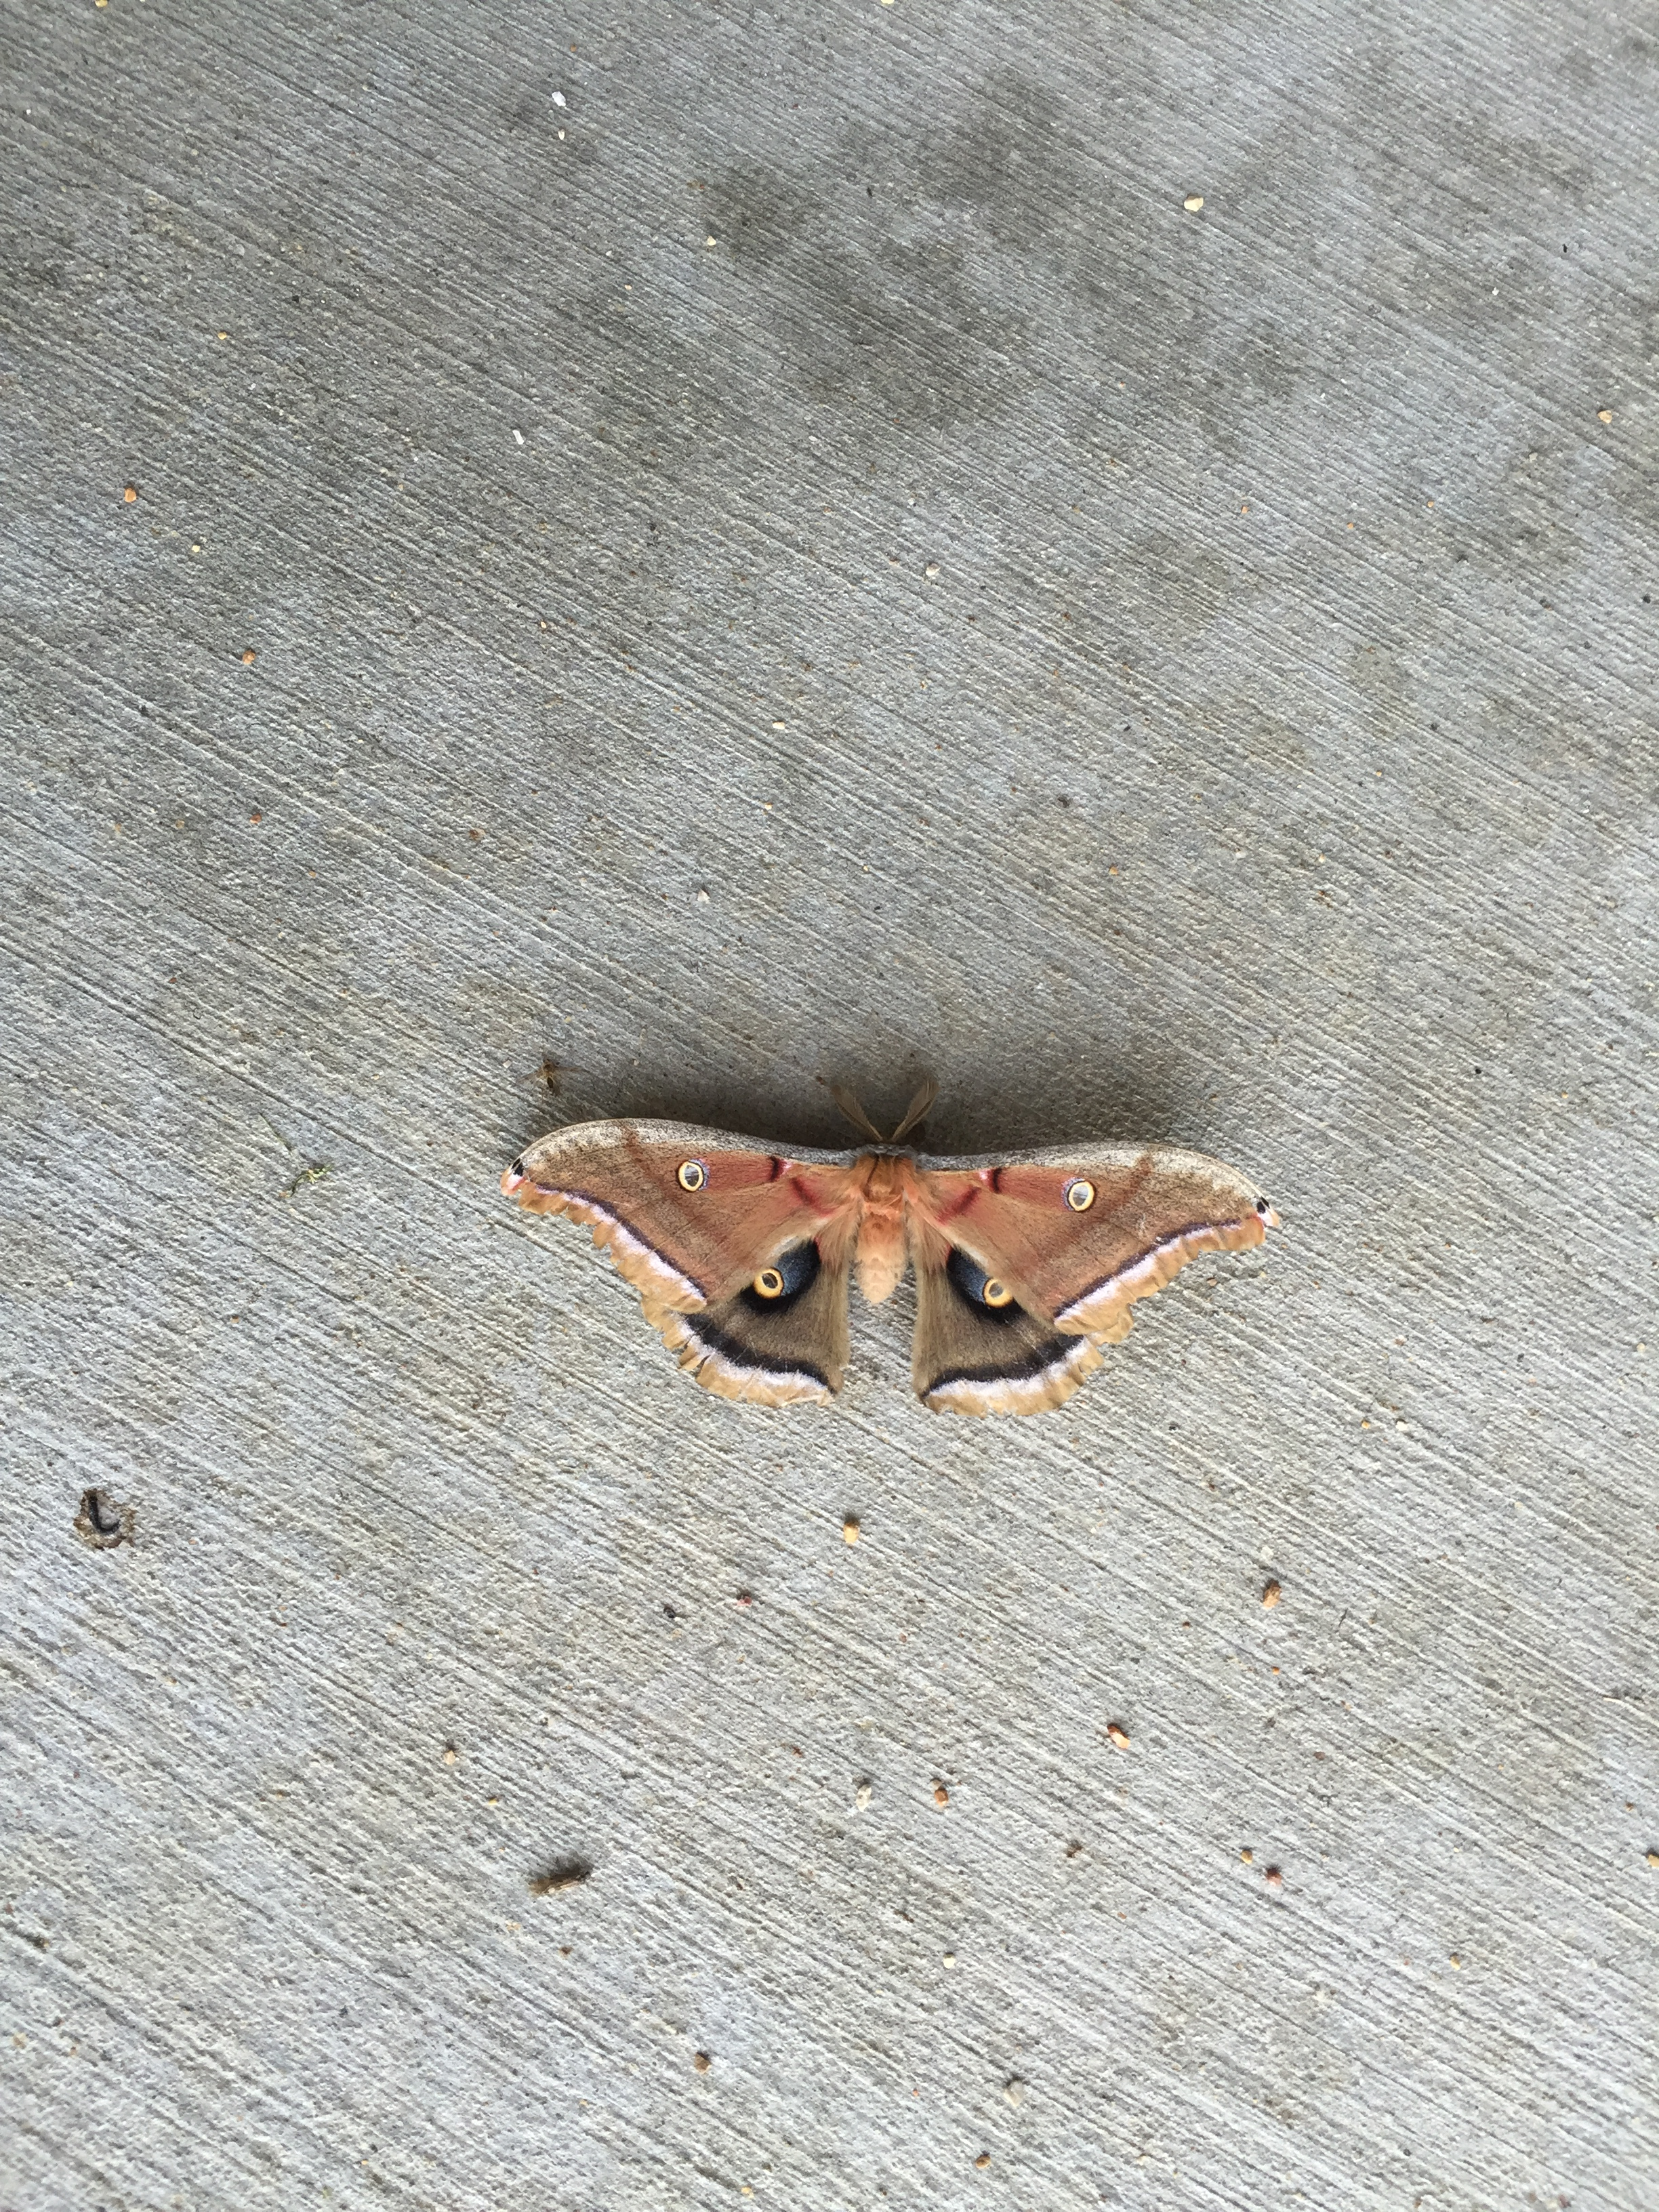 This polyphemus moth, Antheraea polyphemus, unfolded its wings for the photographer in front of the Feynman Computing Center one recent morning. Photo: William Barker, CCD